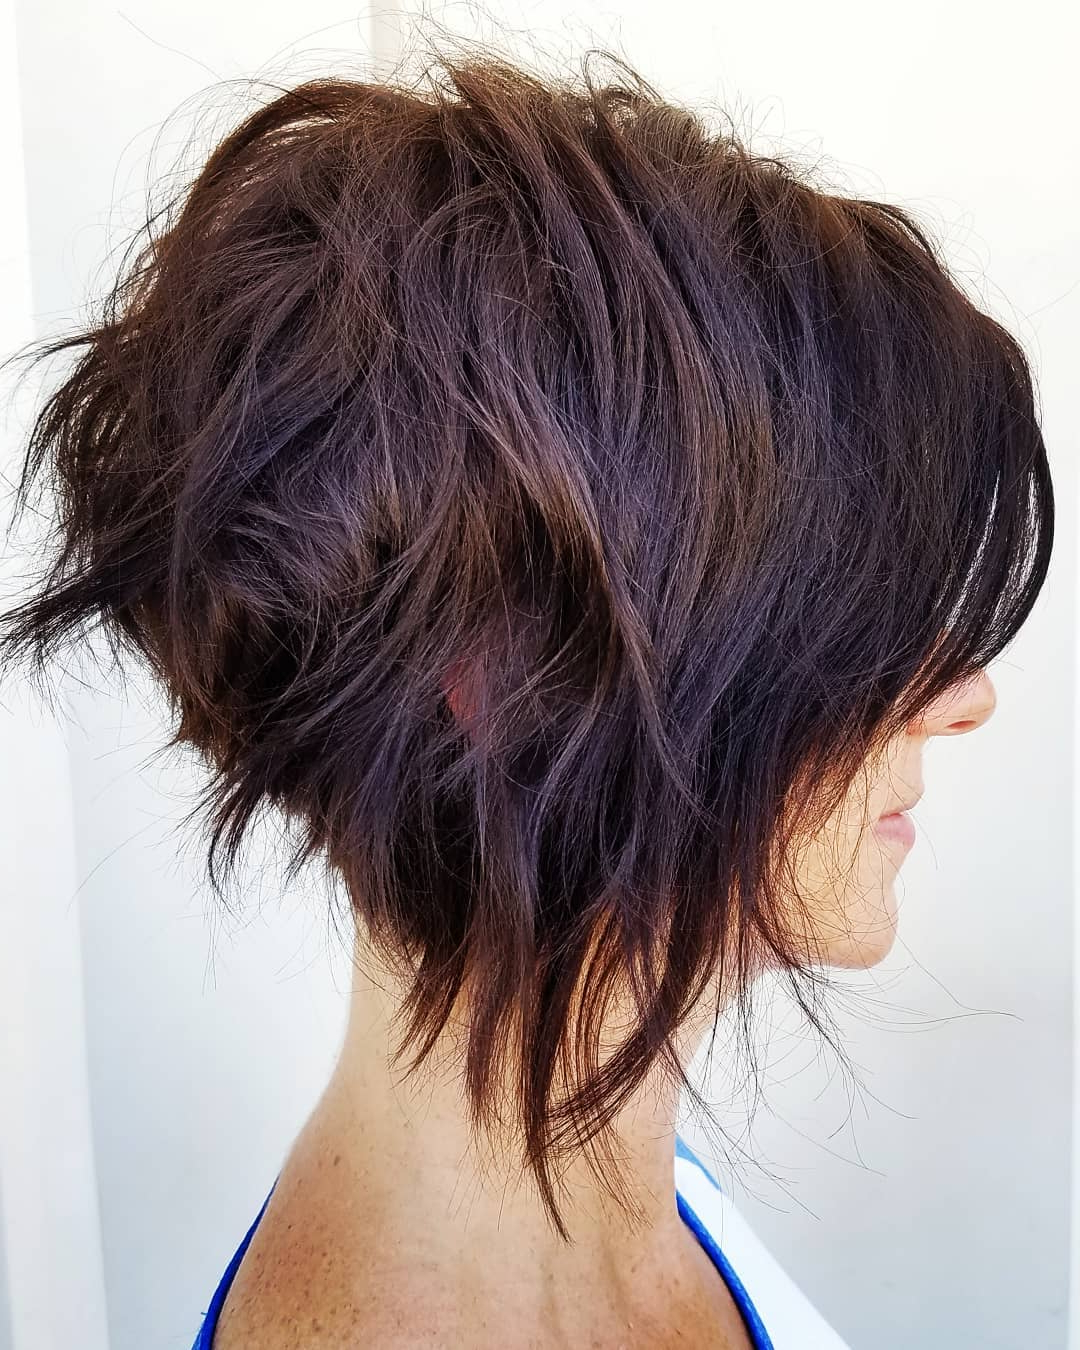 10 Trendy Messy Bob Hairstyles And Haircuts, 2019 Female Short Hair With Regard To Latest Cute A Line Bob Hairstyles With Volume Towards The Ends (Gallery 16 of 20)